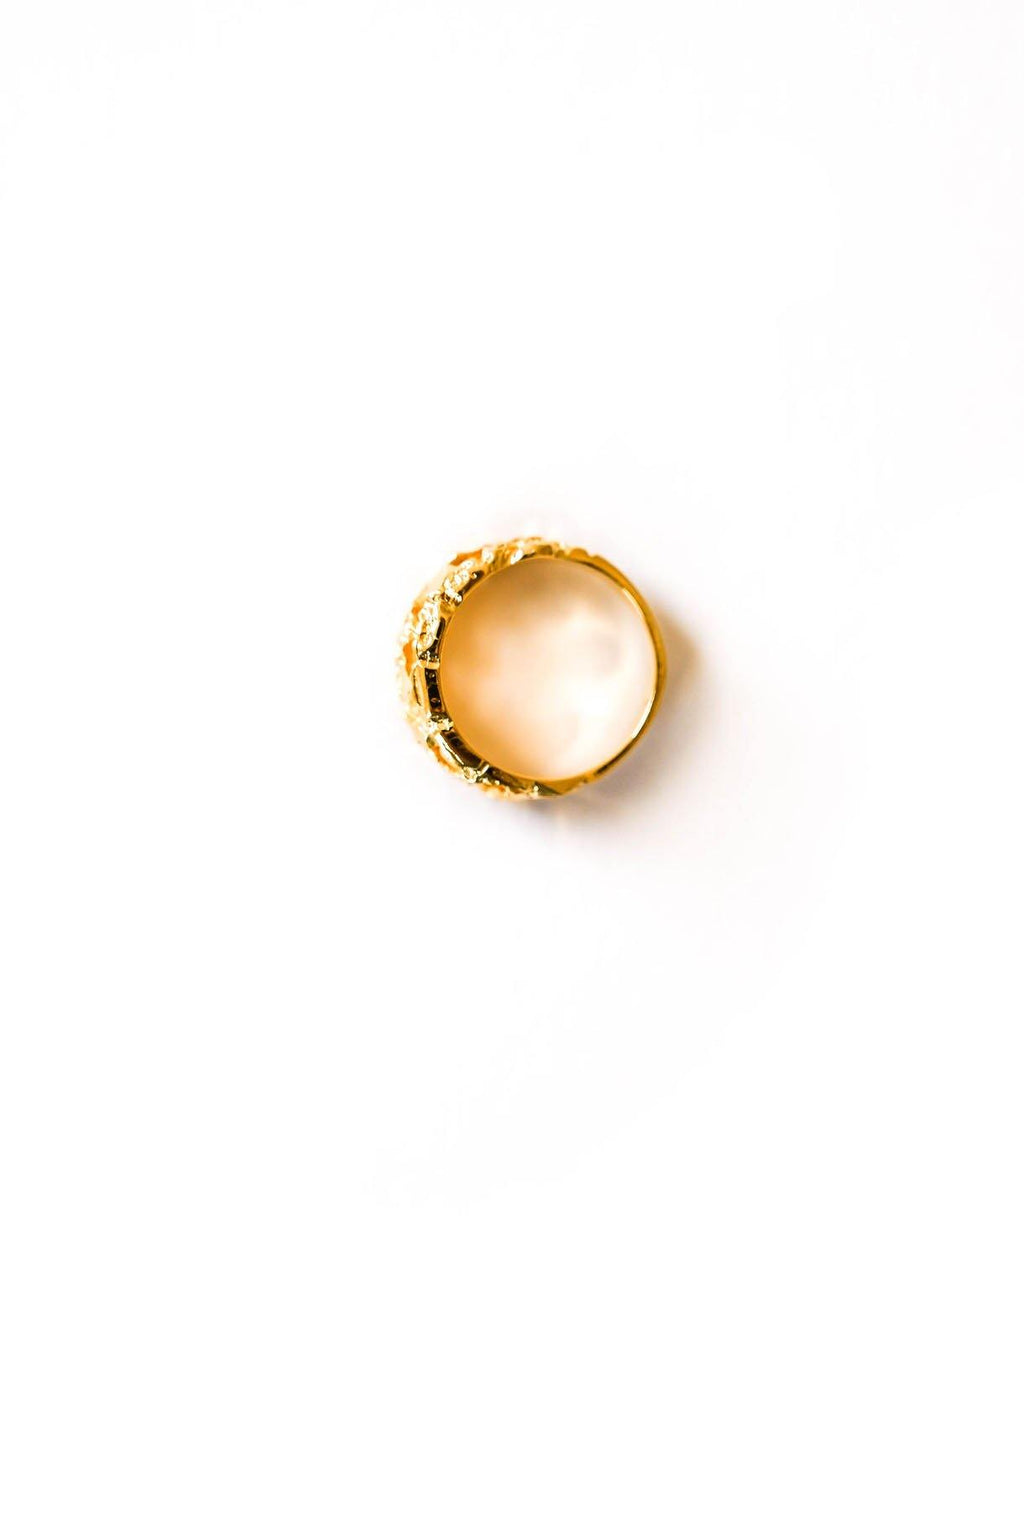 Textured Gold Ring